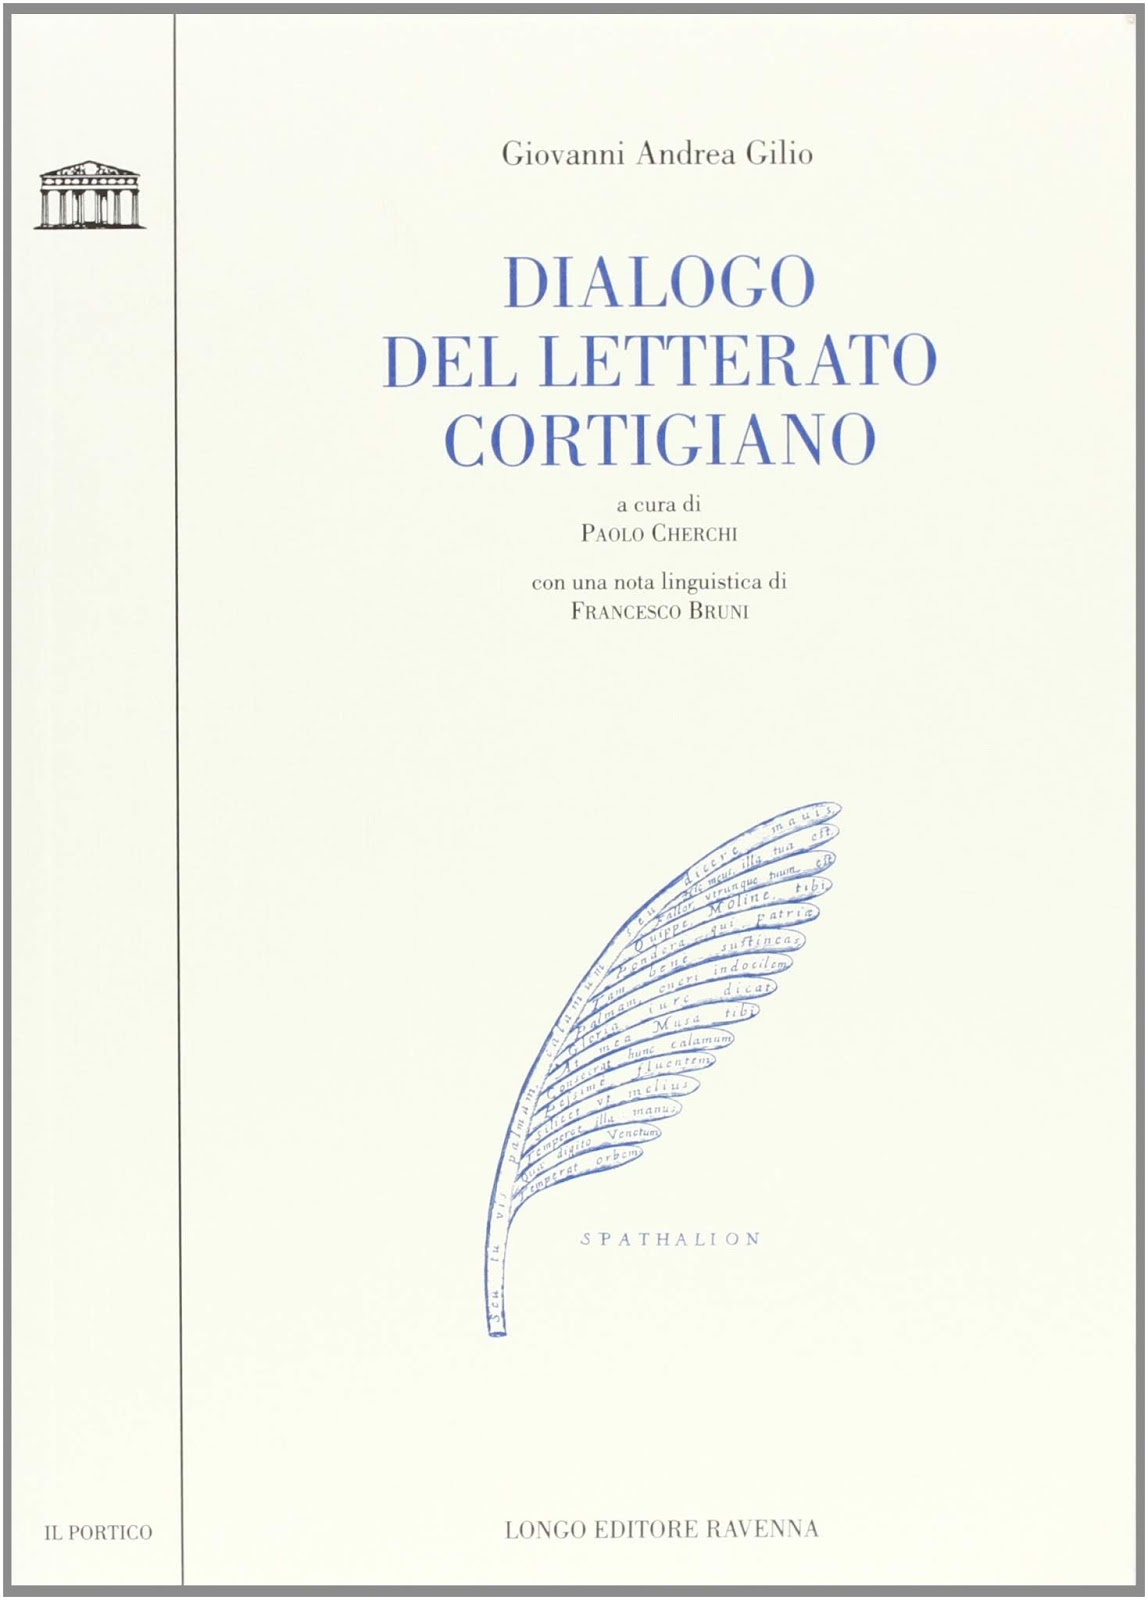 The front cover of the modern edition of the dialogo del letterato cortigiano edited by paolo cherchi ravenna longo publishing house 2002